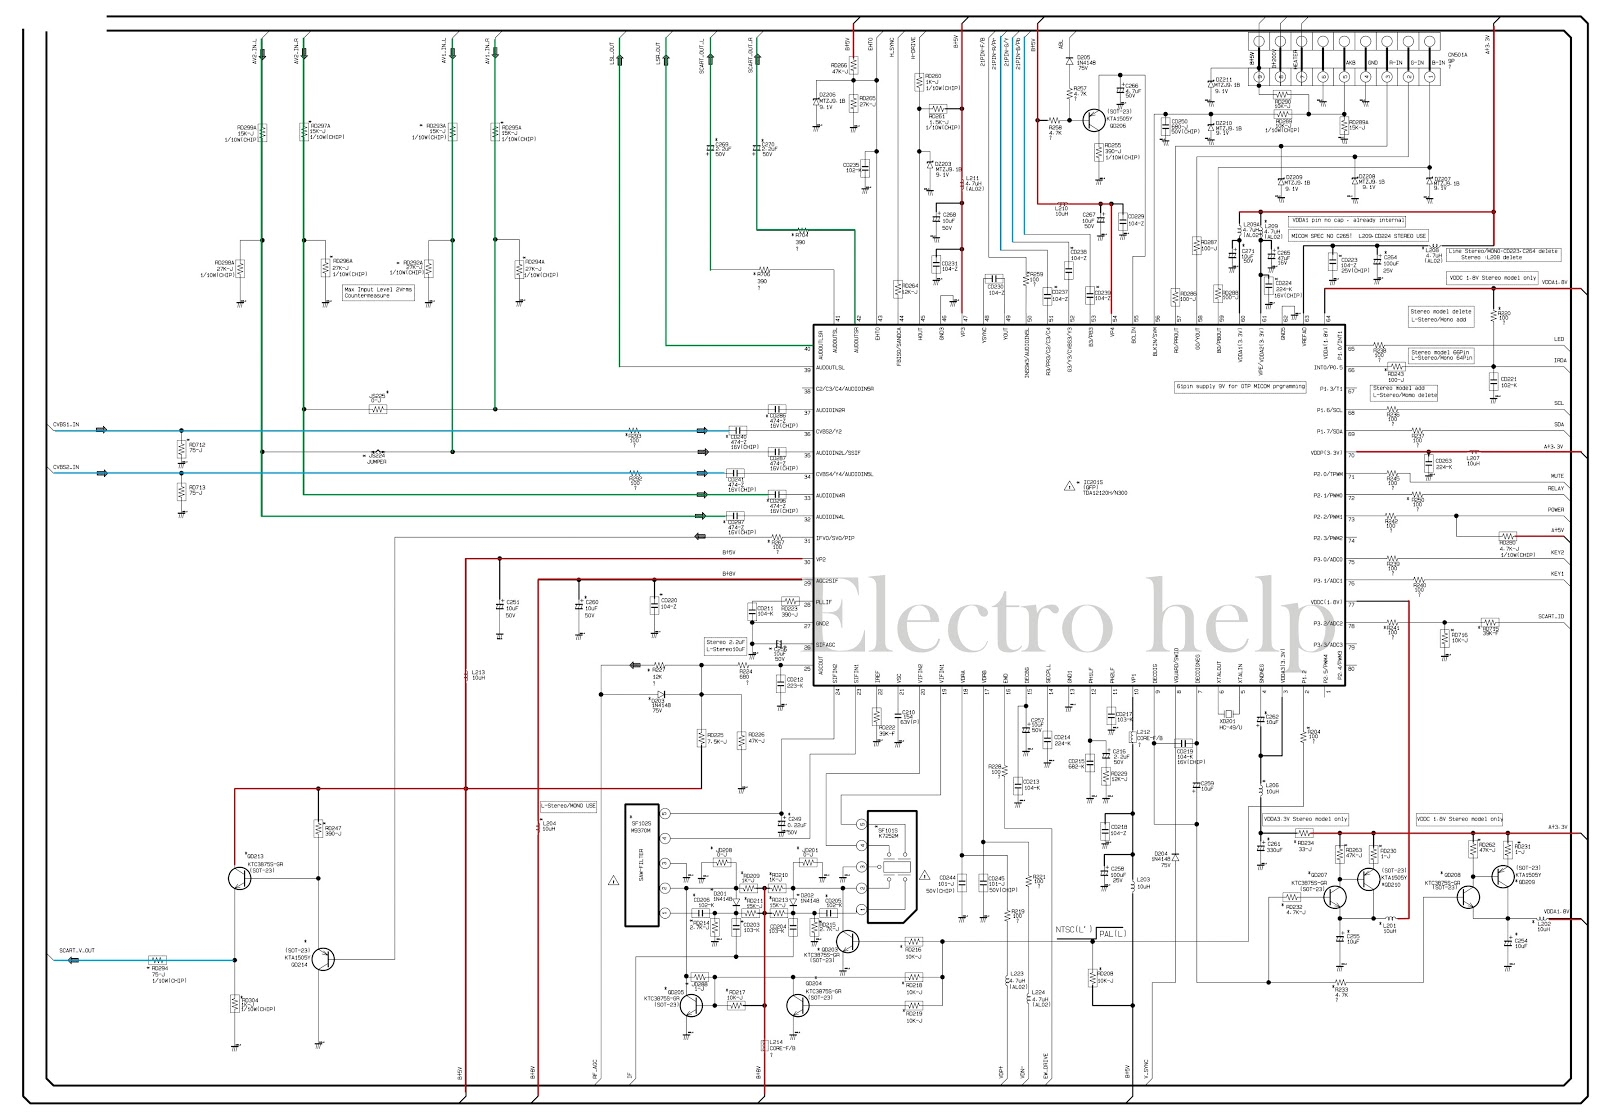 Cl21a551 Samsung Crt Tv  U2013 Circuit Diagram  U2013 Tda12120h  Smd